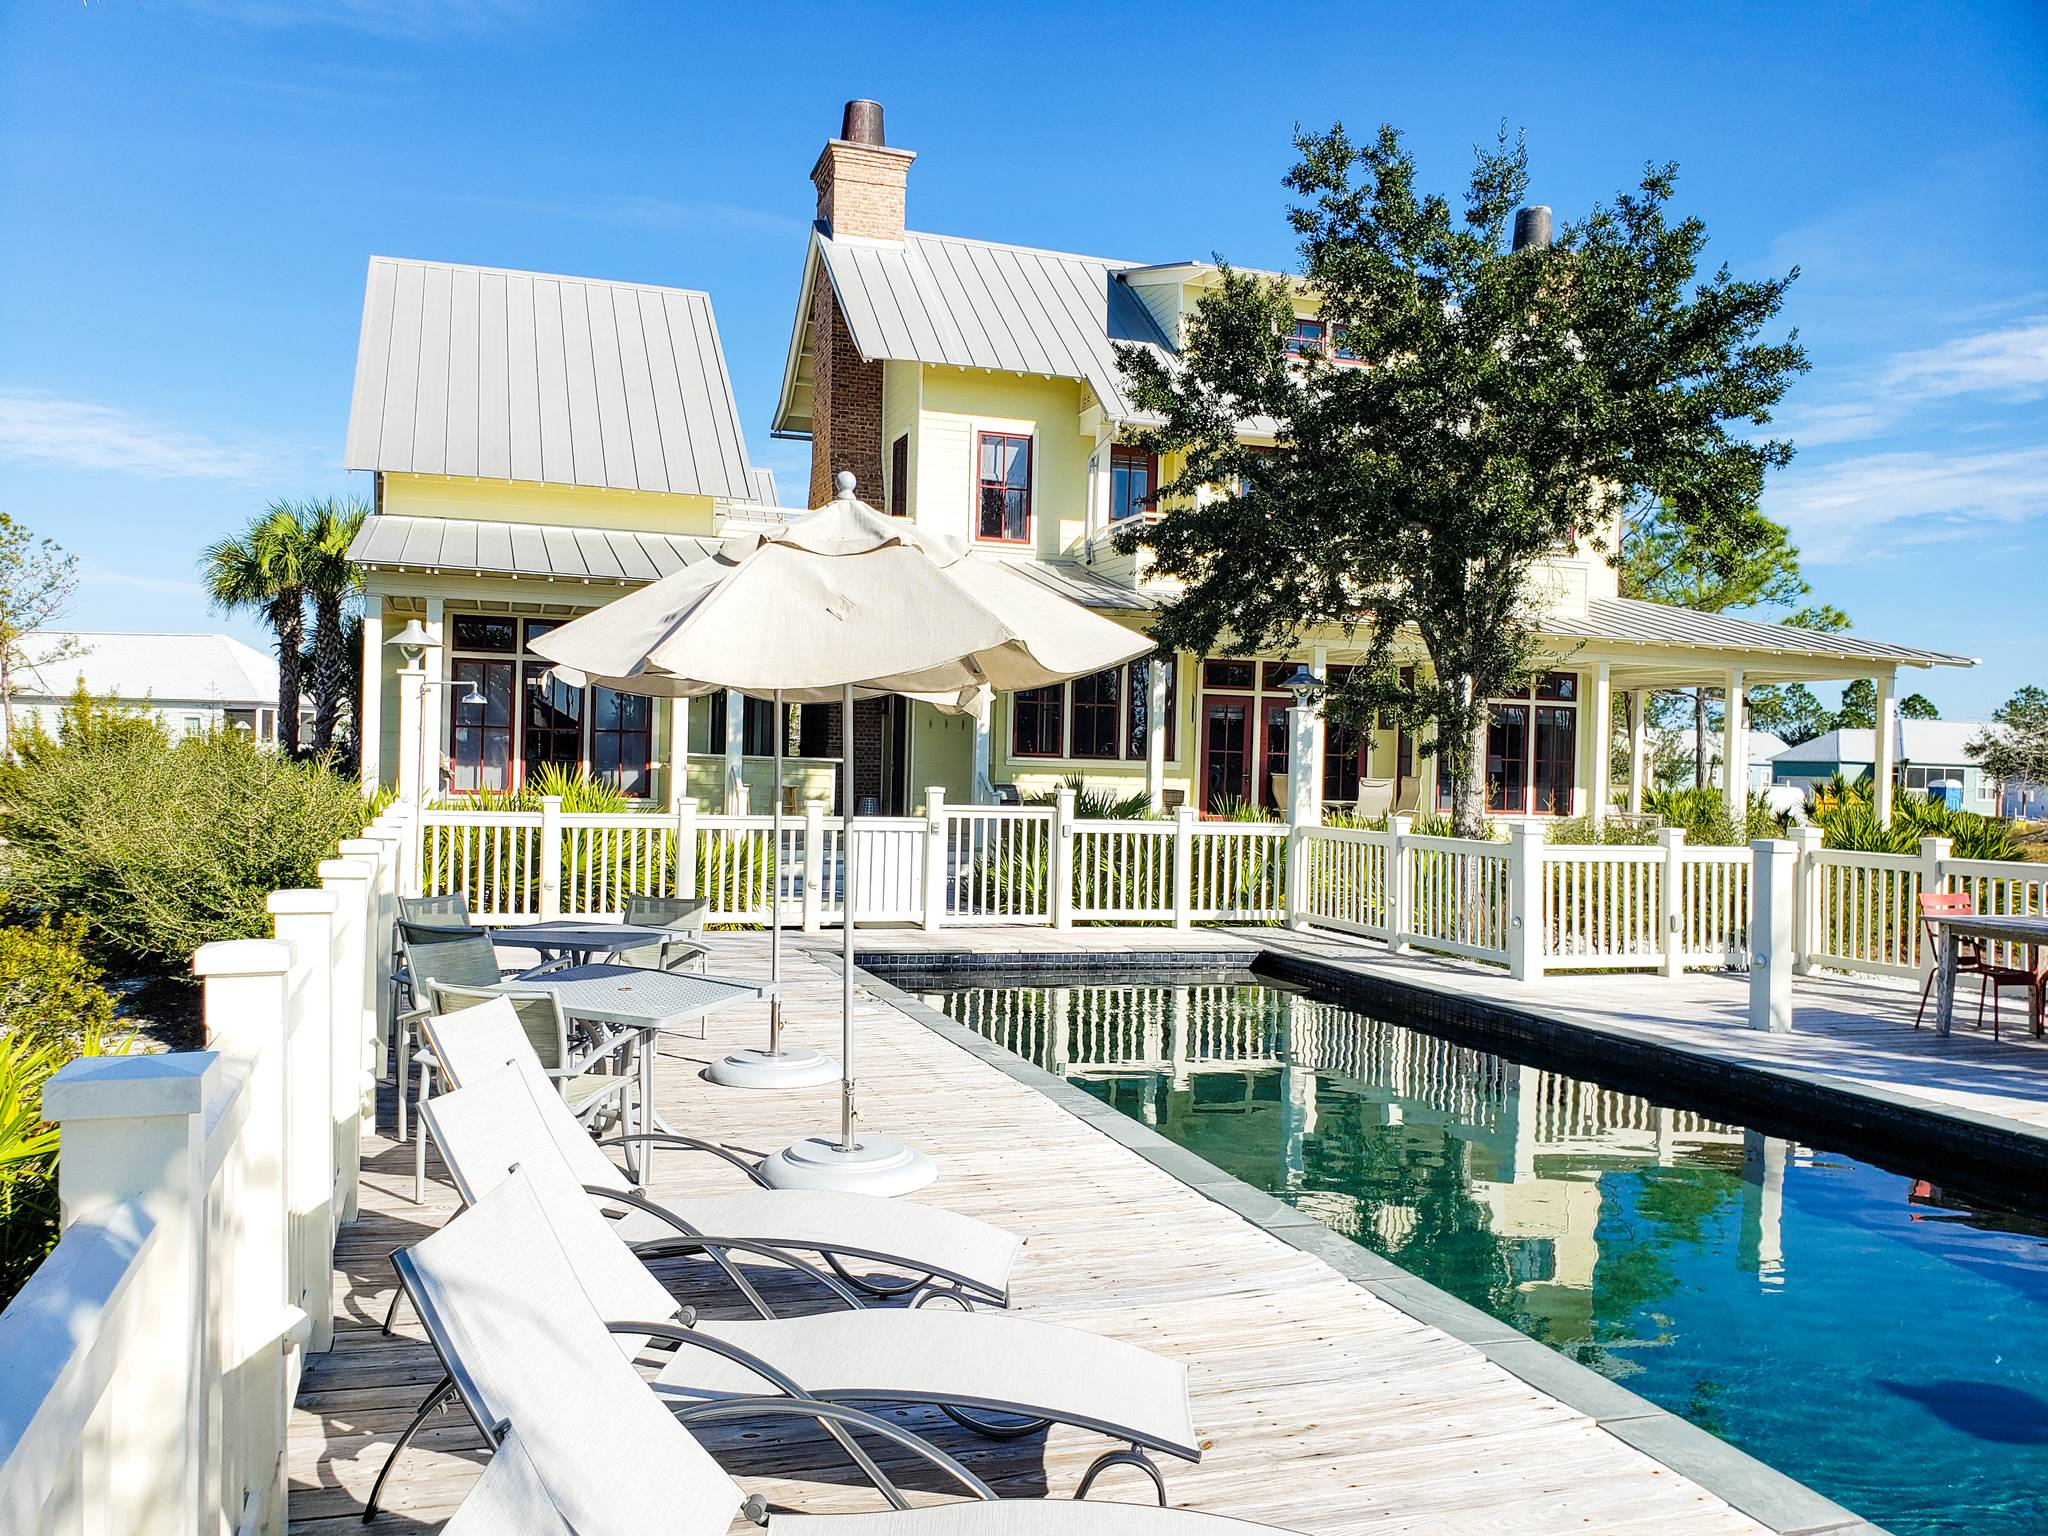 Southern Accent House No Worries Vacation Rentals